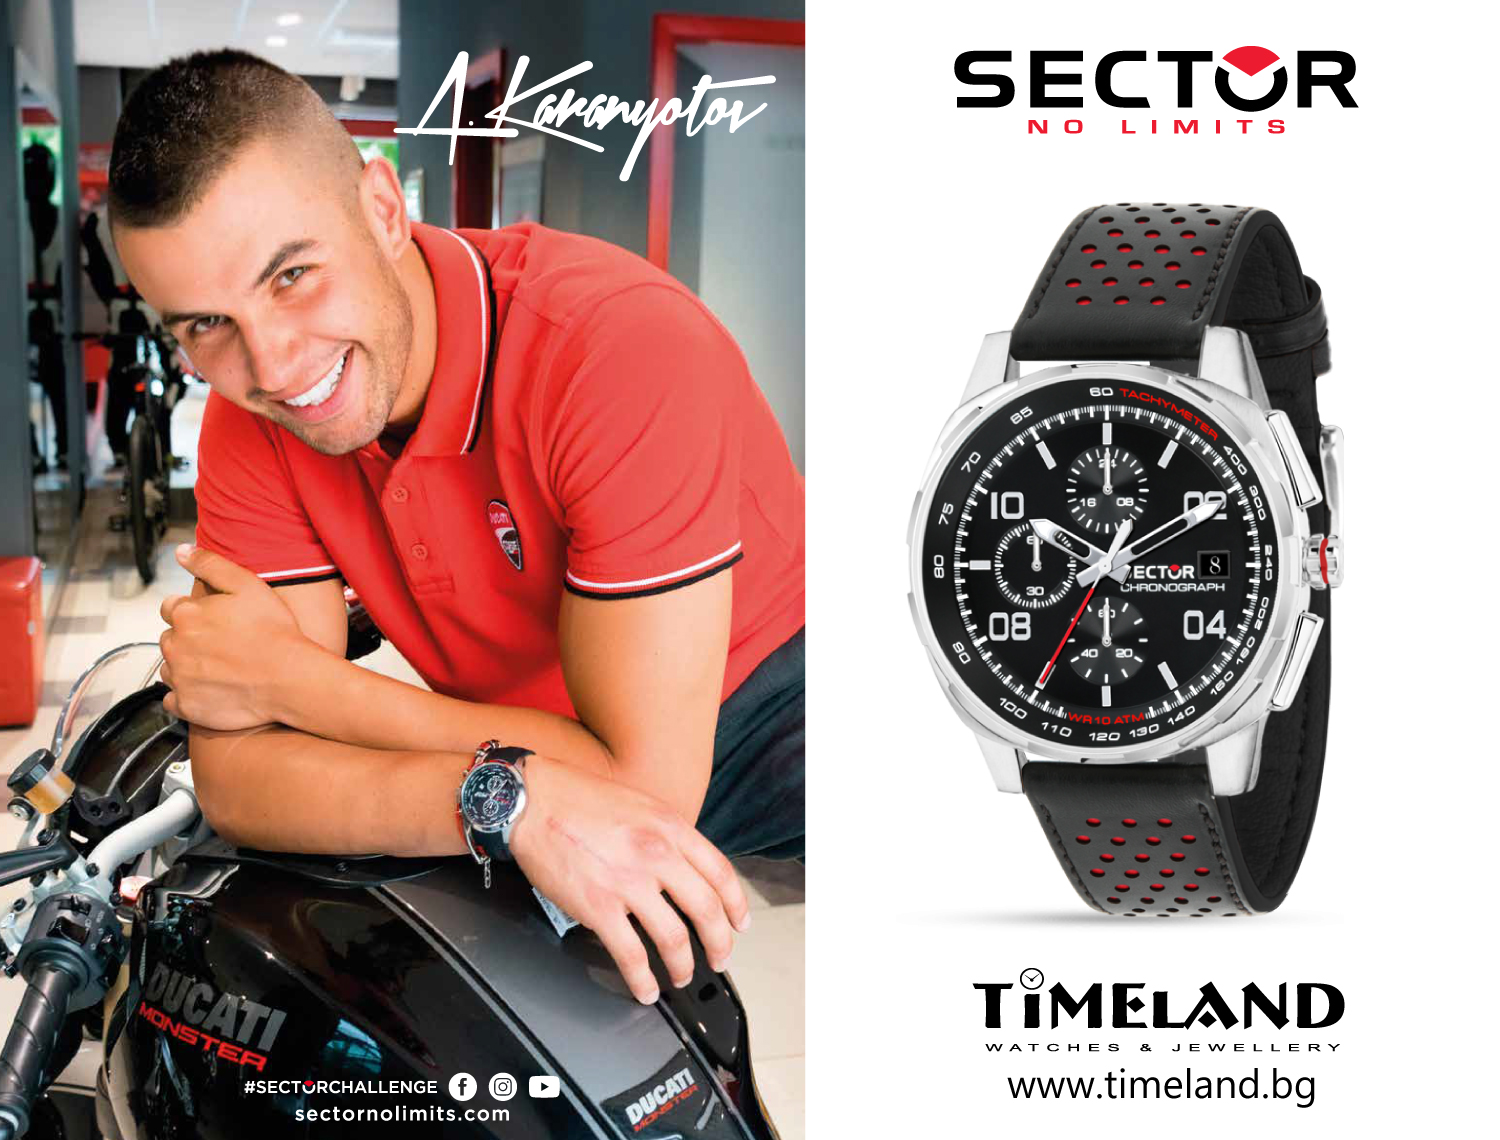 Sports watches Sector No Limits in Timeland